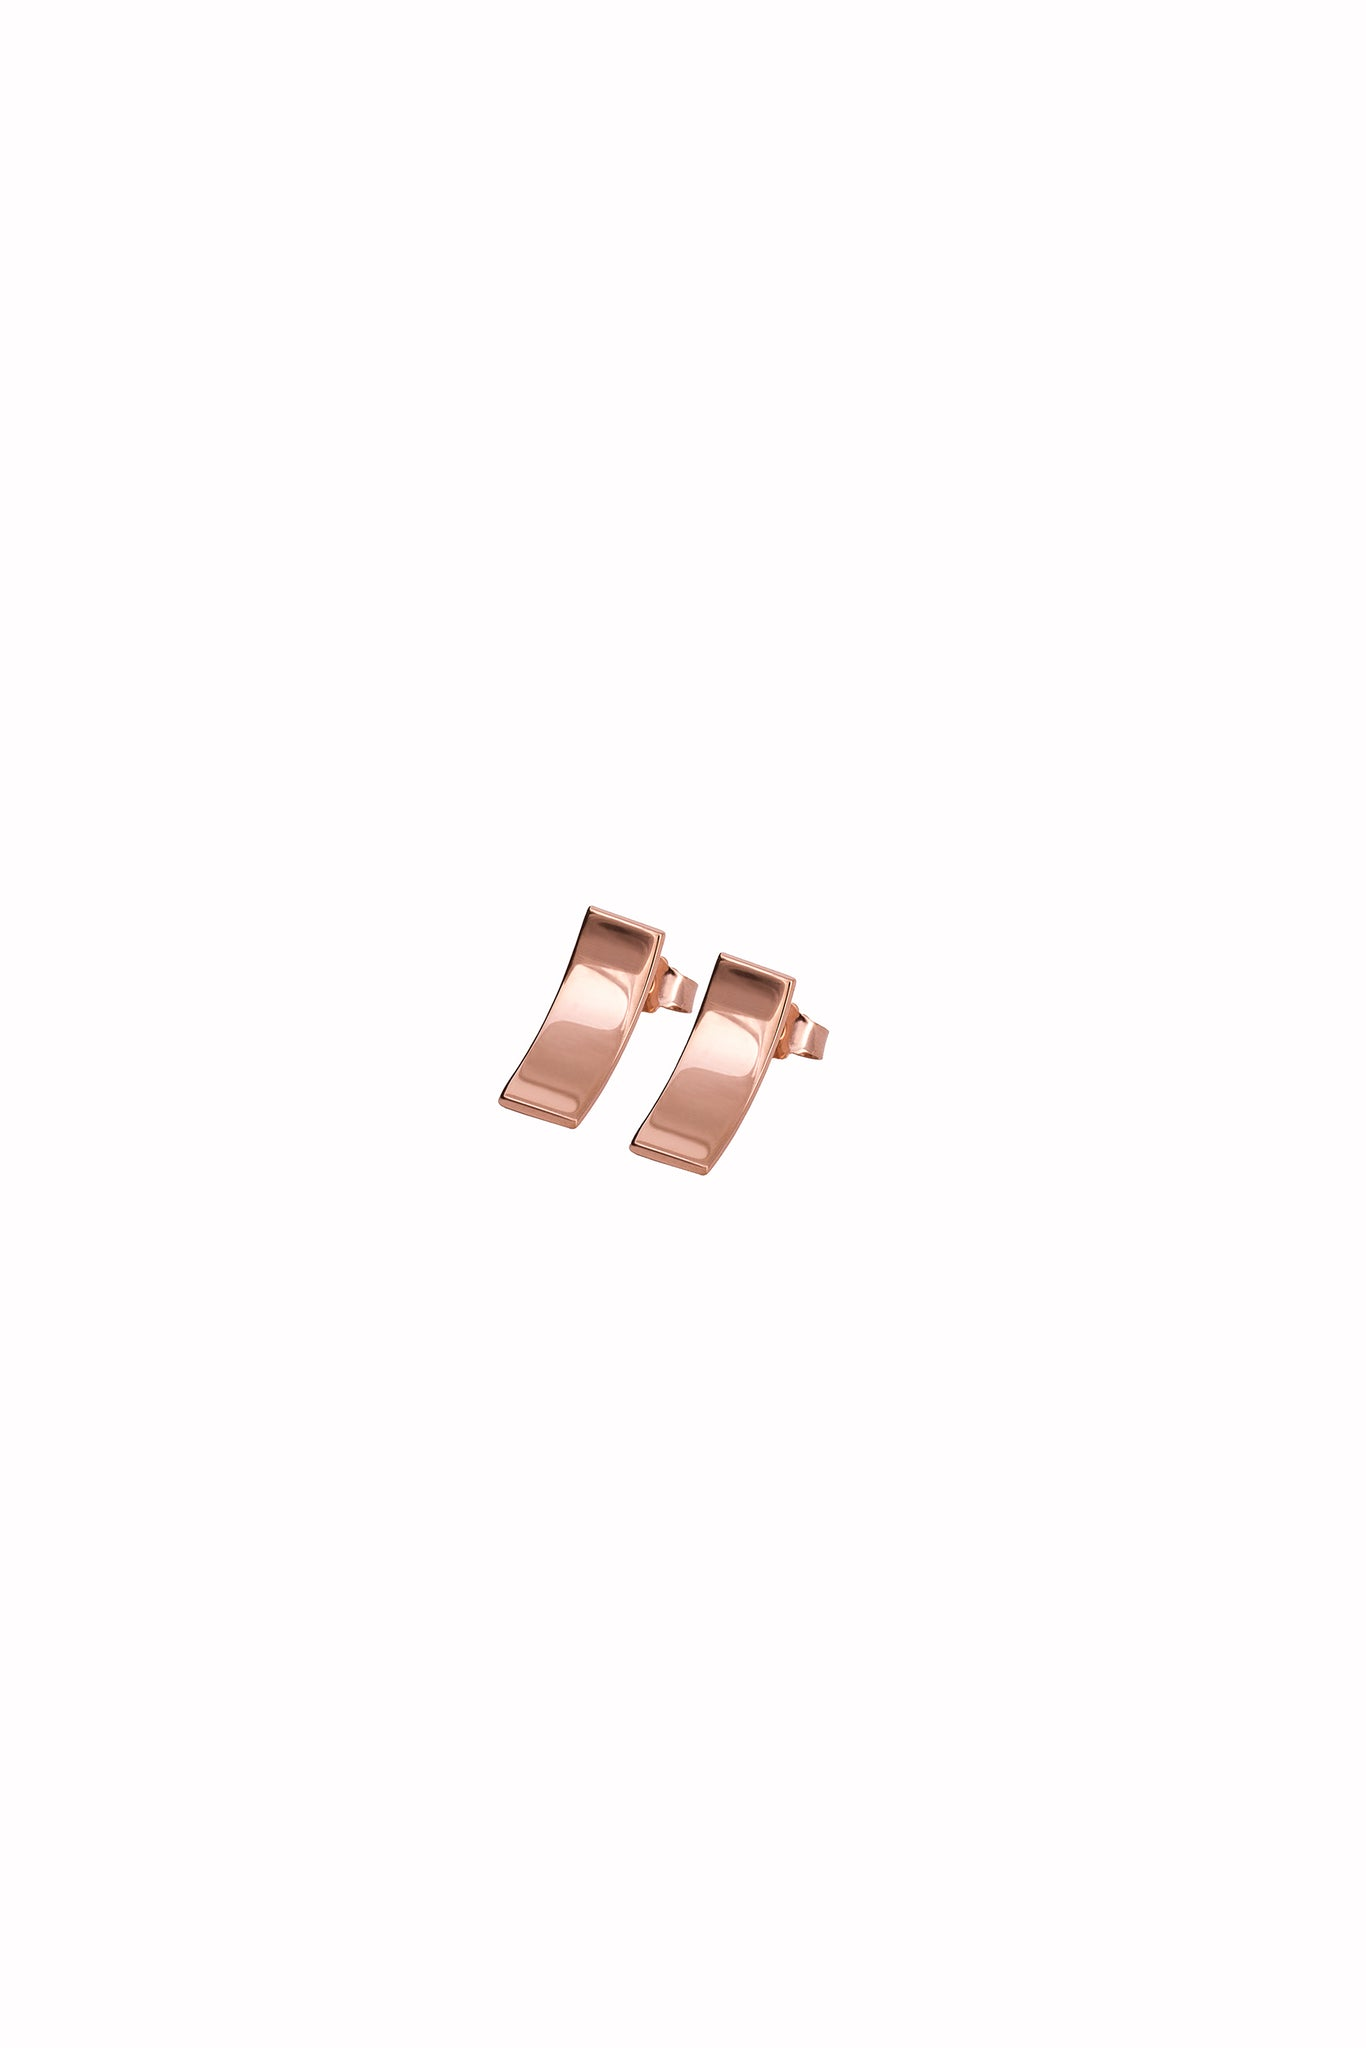 COVE S Earrings rose